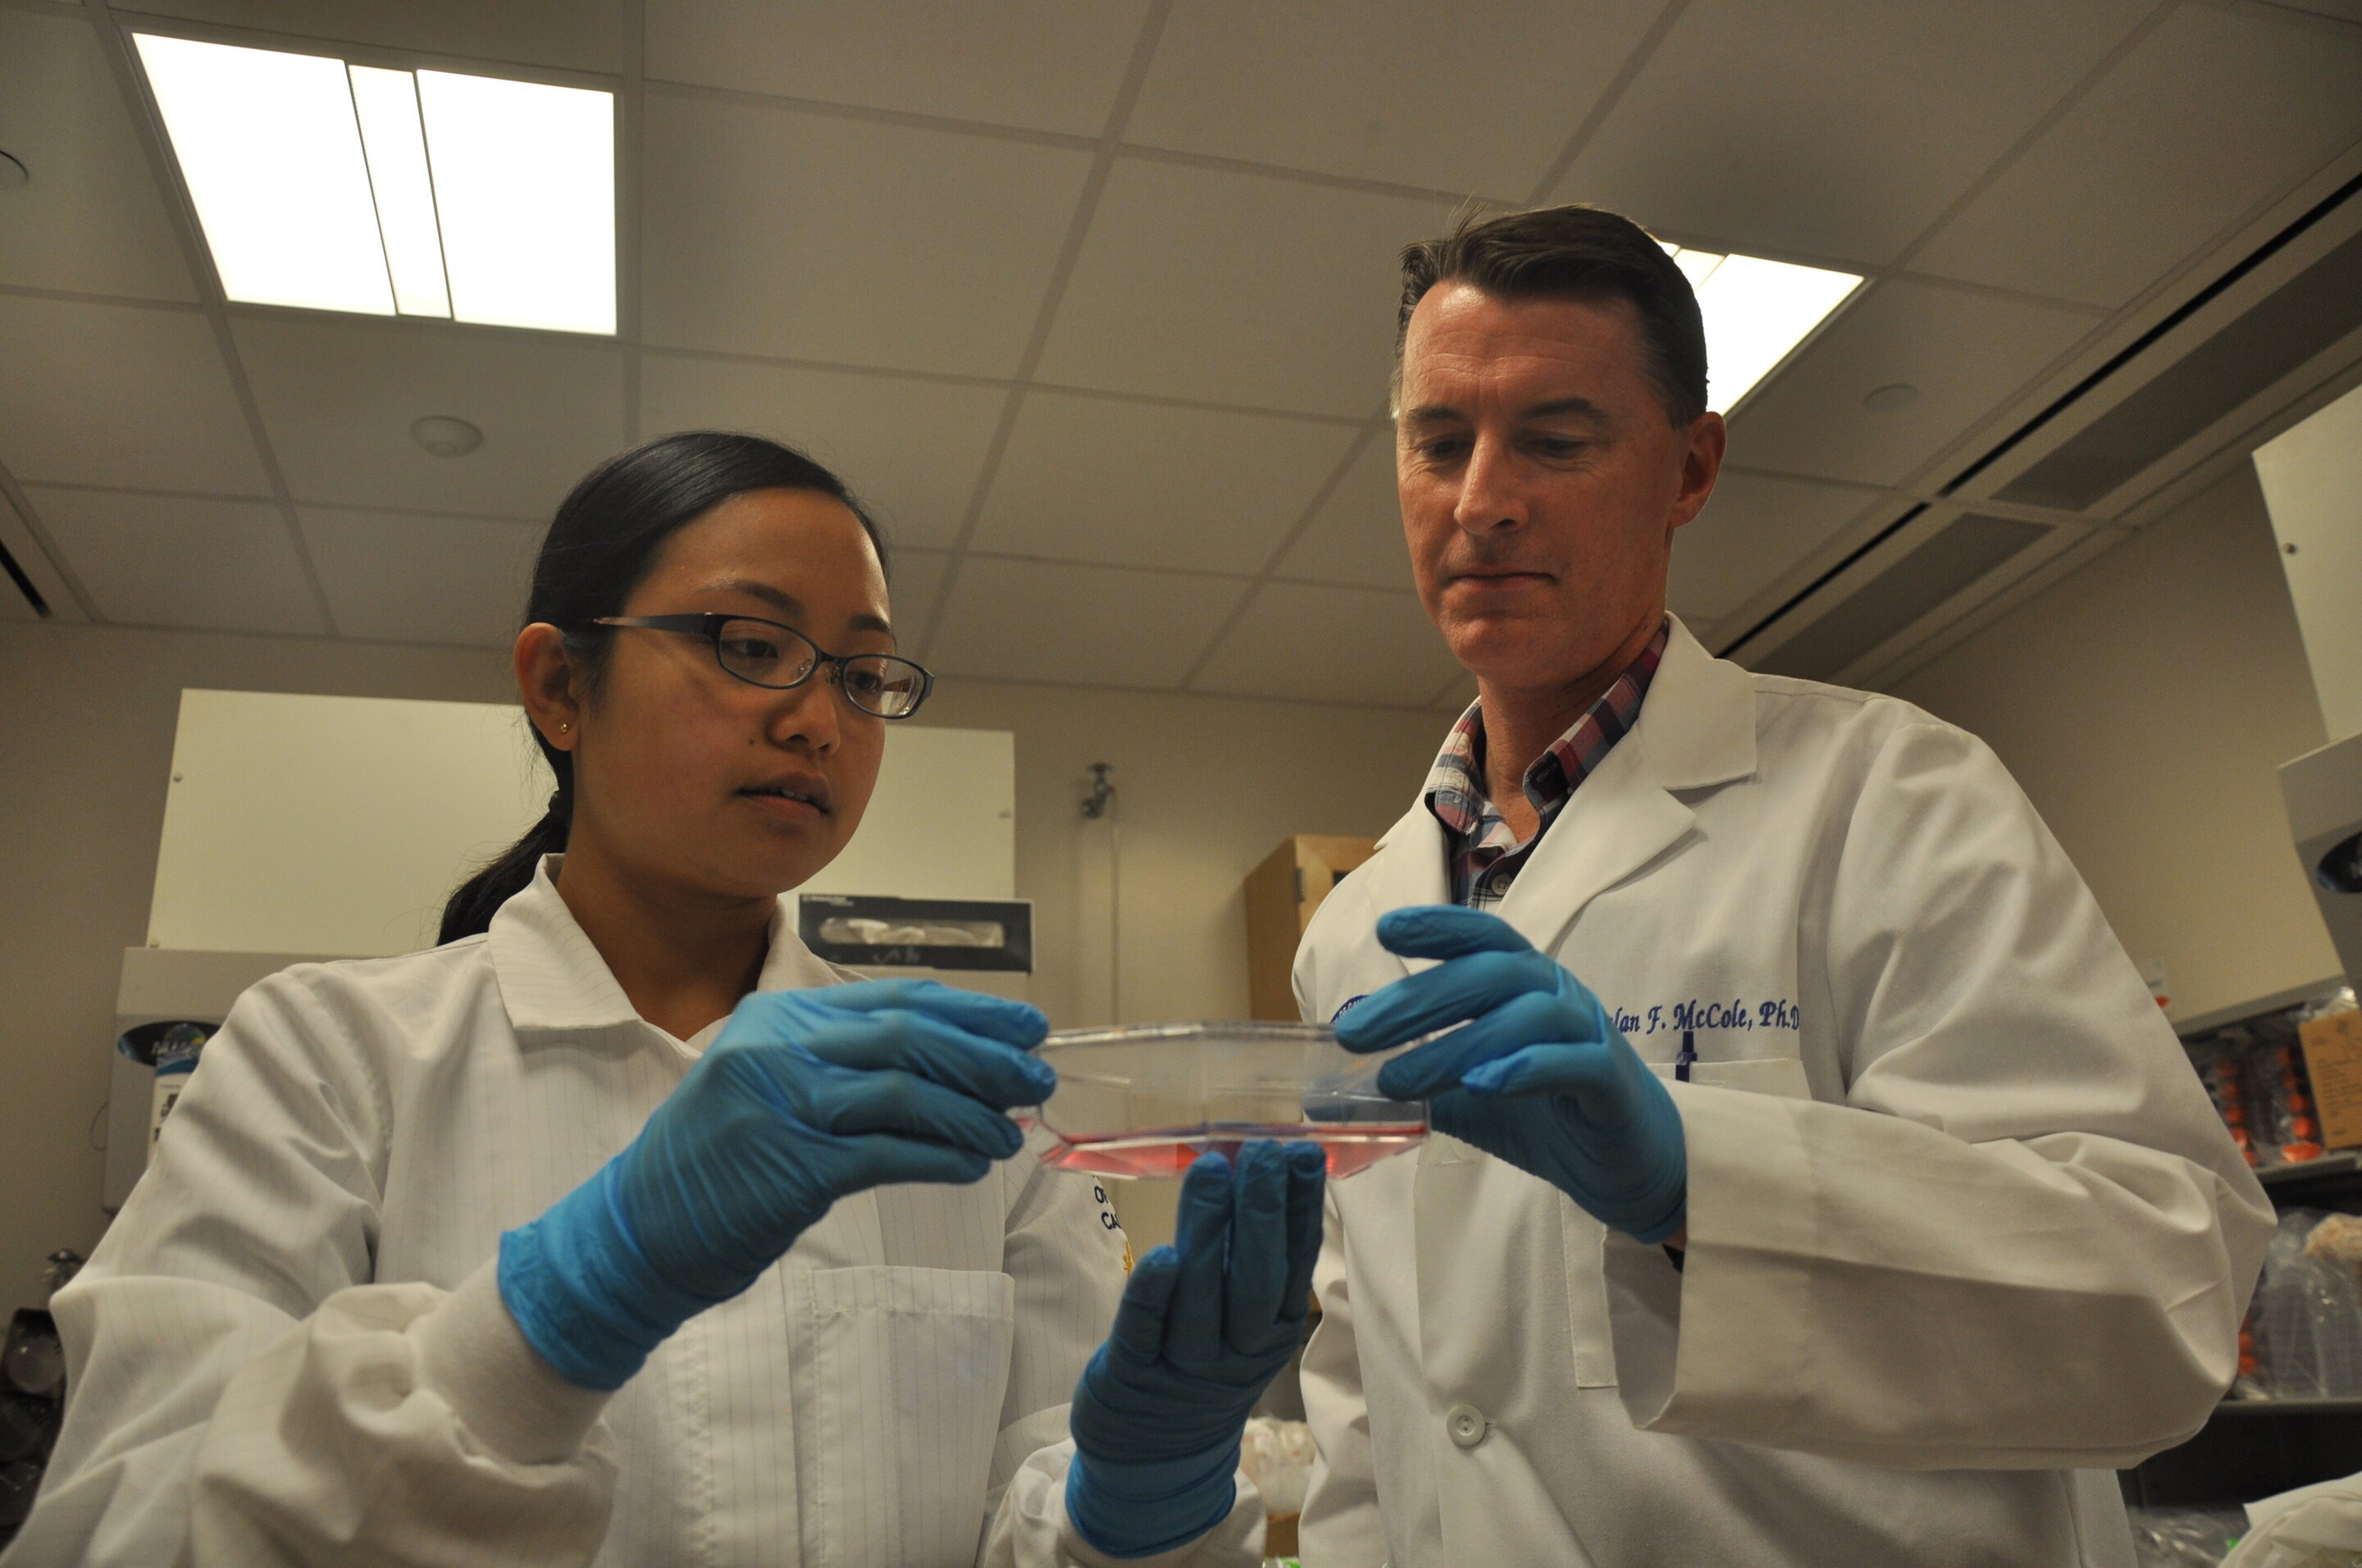 Declan McCole (right) and his graduate student Anica Sayoc-Becerra are seen here examining a culture flask of intestinal epithelial cells prior to treating them with tofacitinib (Credit: I Pittalwala, UC Riverside)